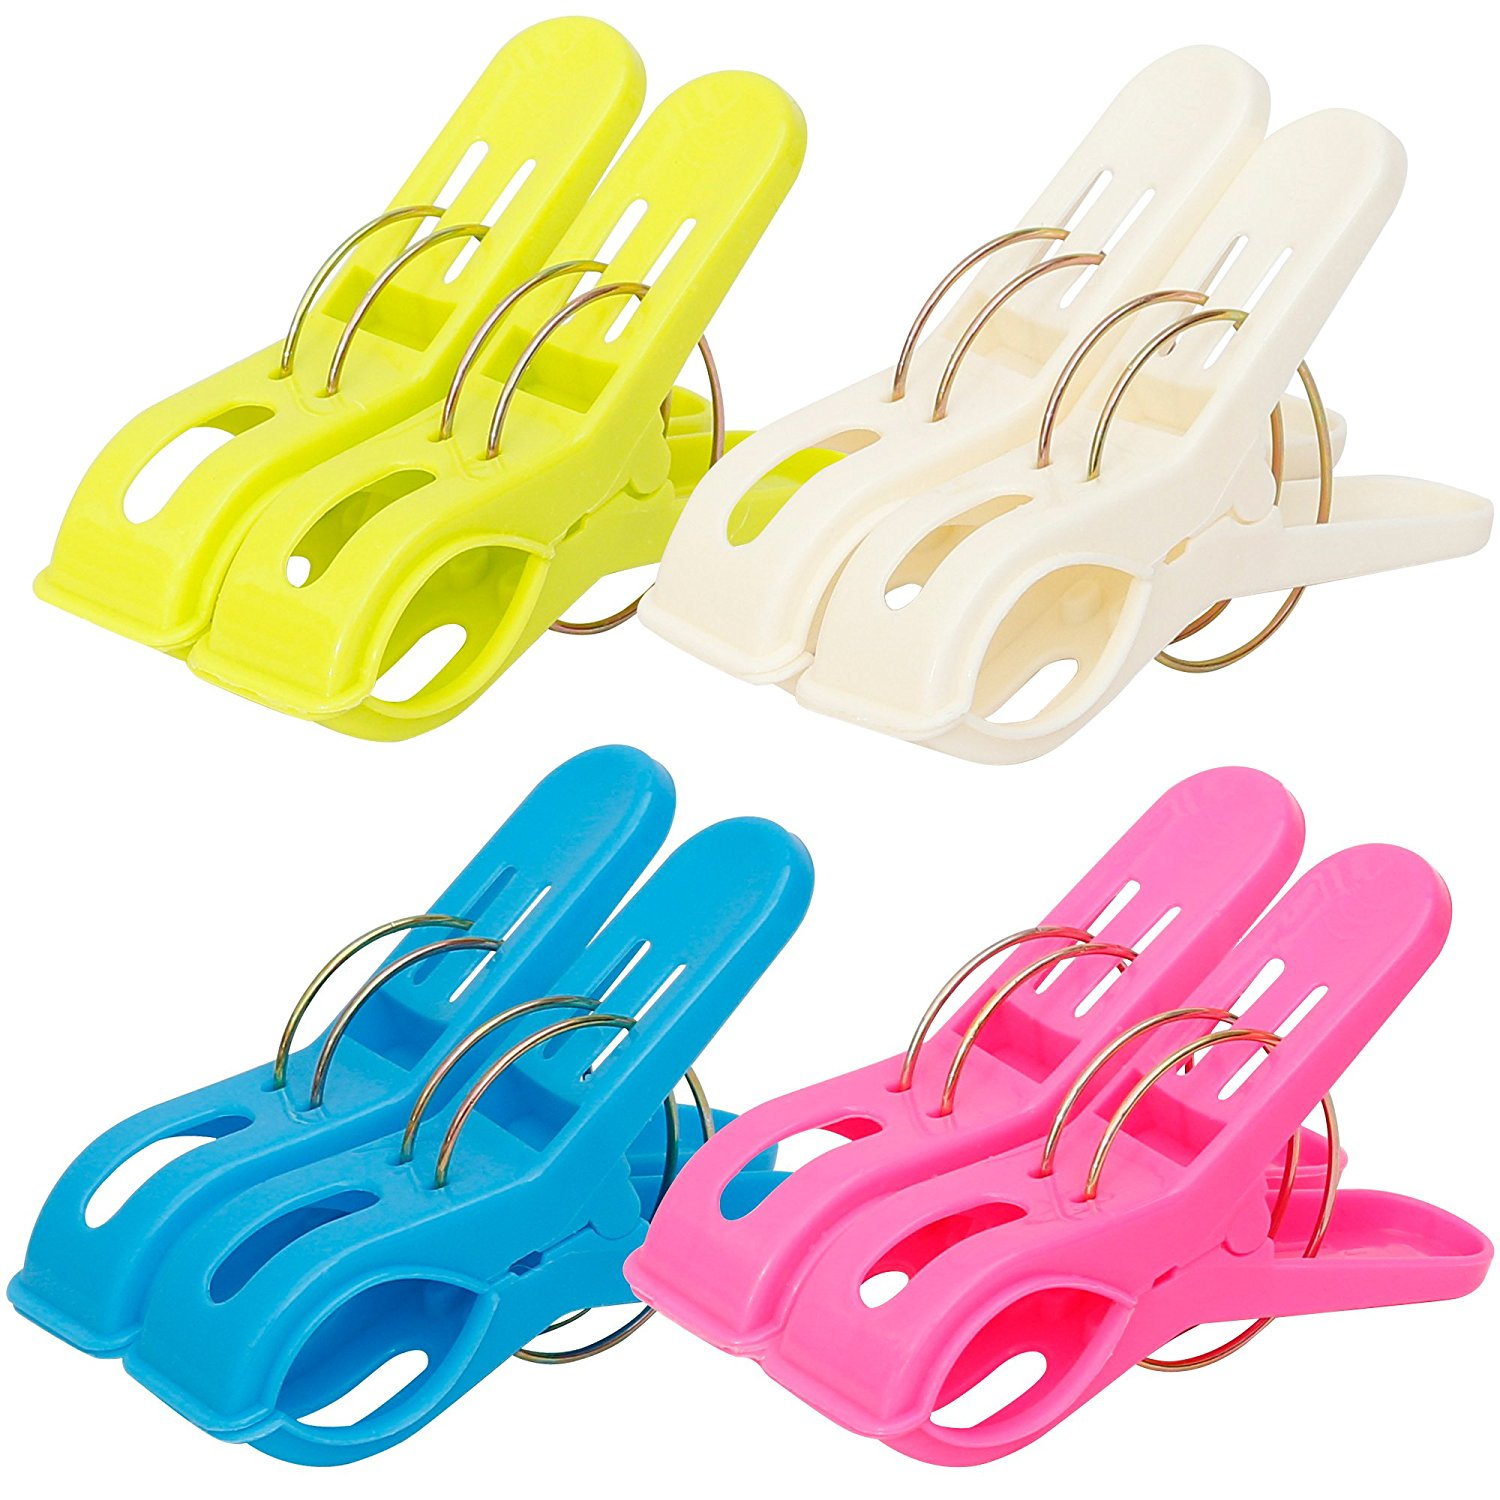 IPOW 8 Pack Towel Clips Plastic Quilt Hanging Clips Clamps Holder for Beach Chair or Pool Loungers on Your Cruise - Clothes Lines Clips, Jumbo Size